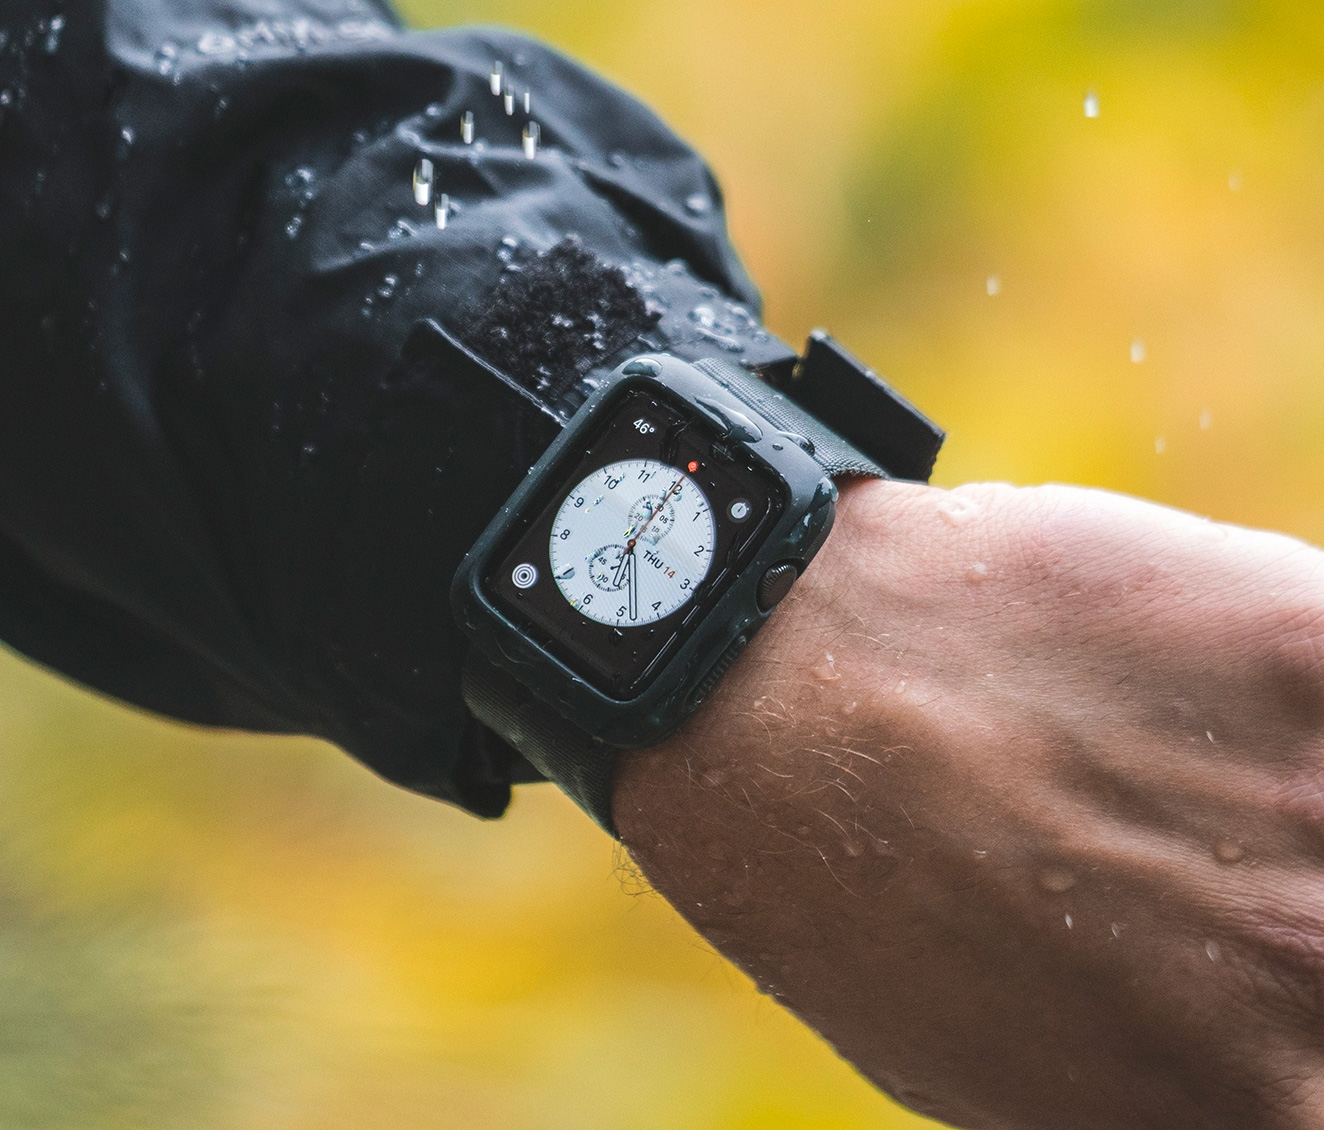 Lander's Moab Case is Battle Armor for Apple Watch at werd.com